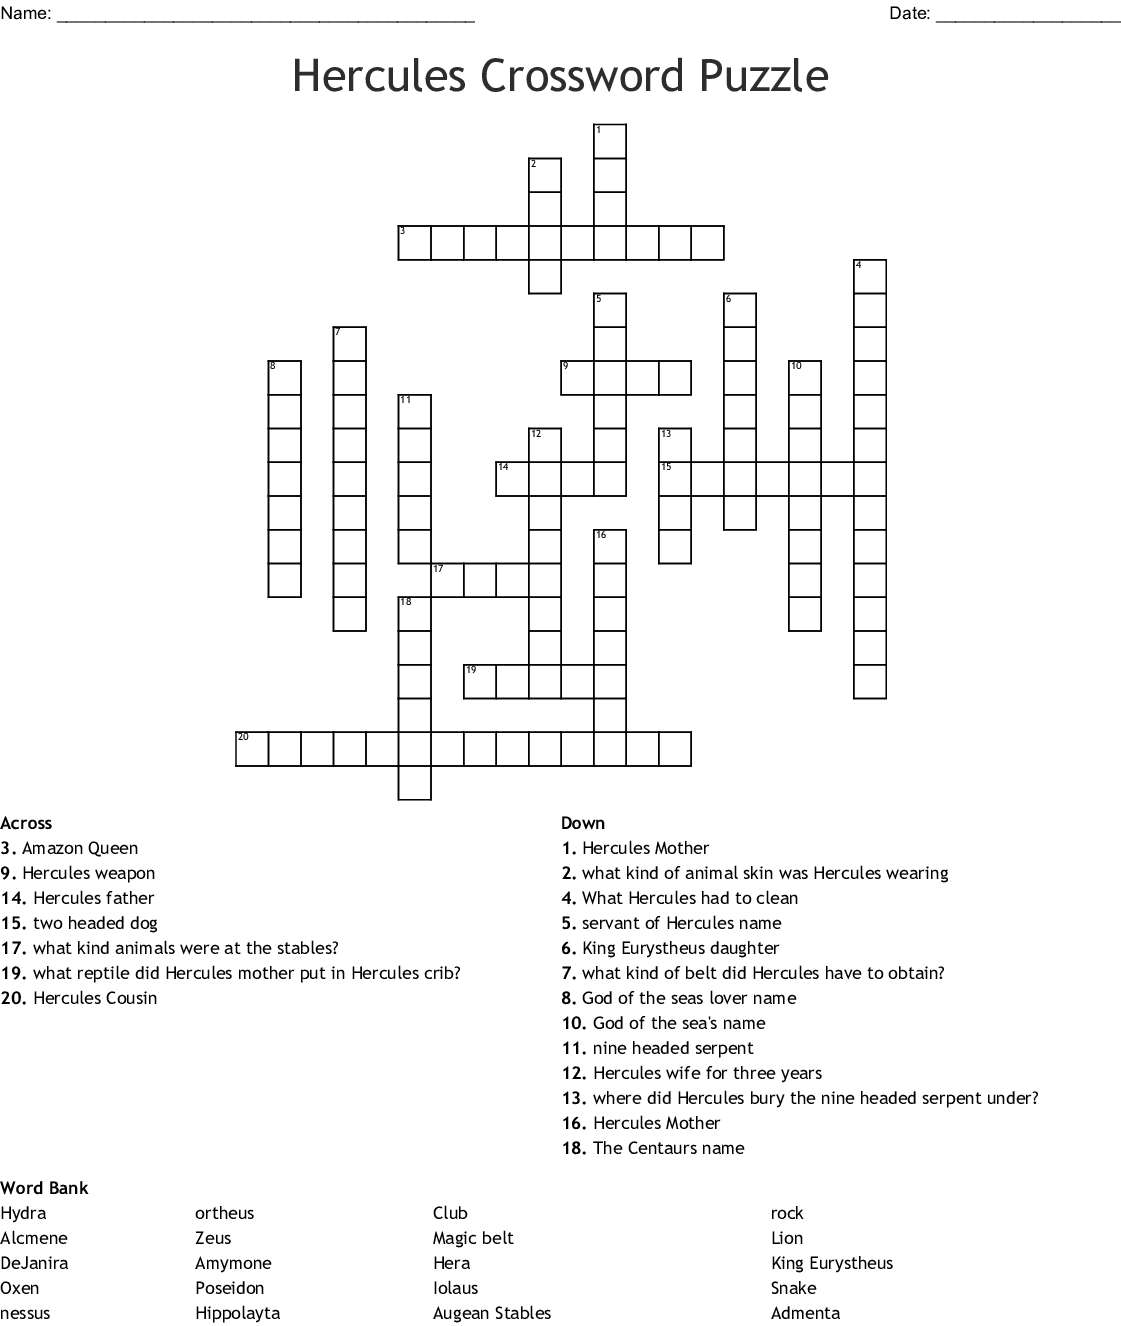 Hercules Crossword Puzzle